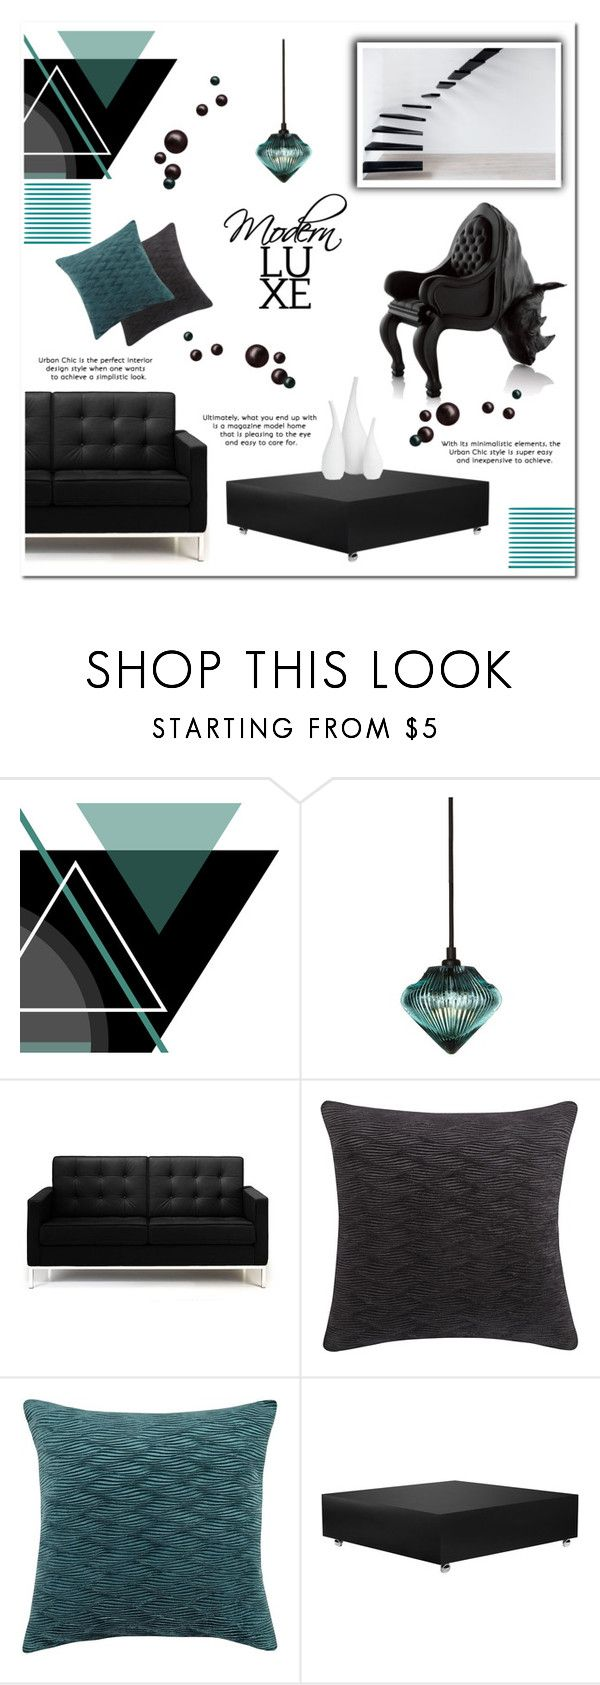 """Modern furniture"" by jelenamaks ❤ liked on Polyvore featuring interior, interiors, interior design, home, home decor, interior decorating, Tom Dixon, Rove Concepts, Laurence Llewelyn-Bowen and VerPan"